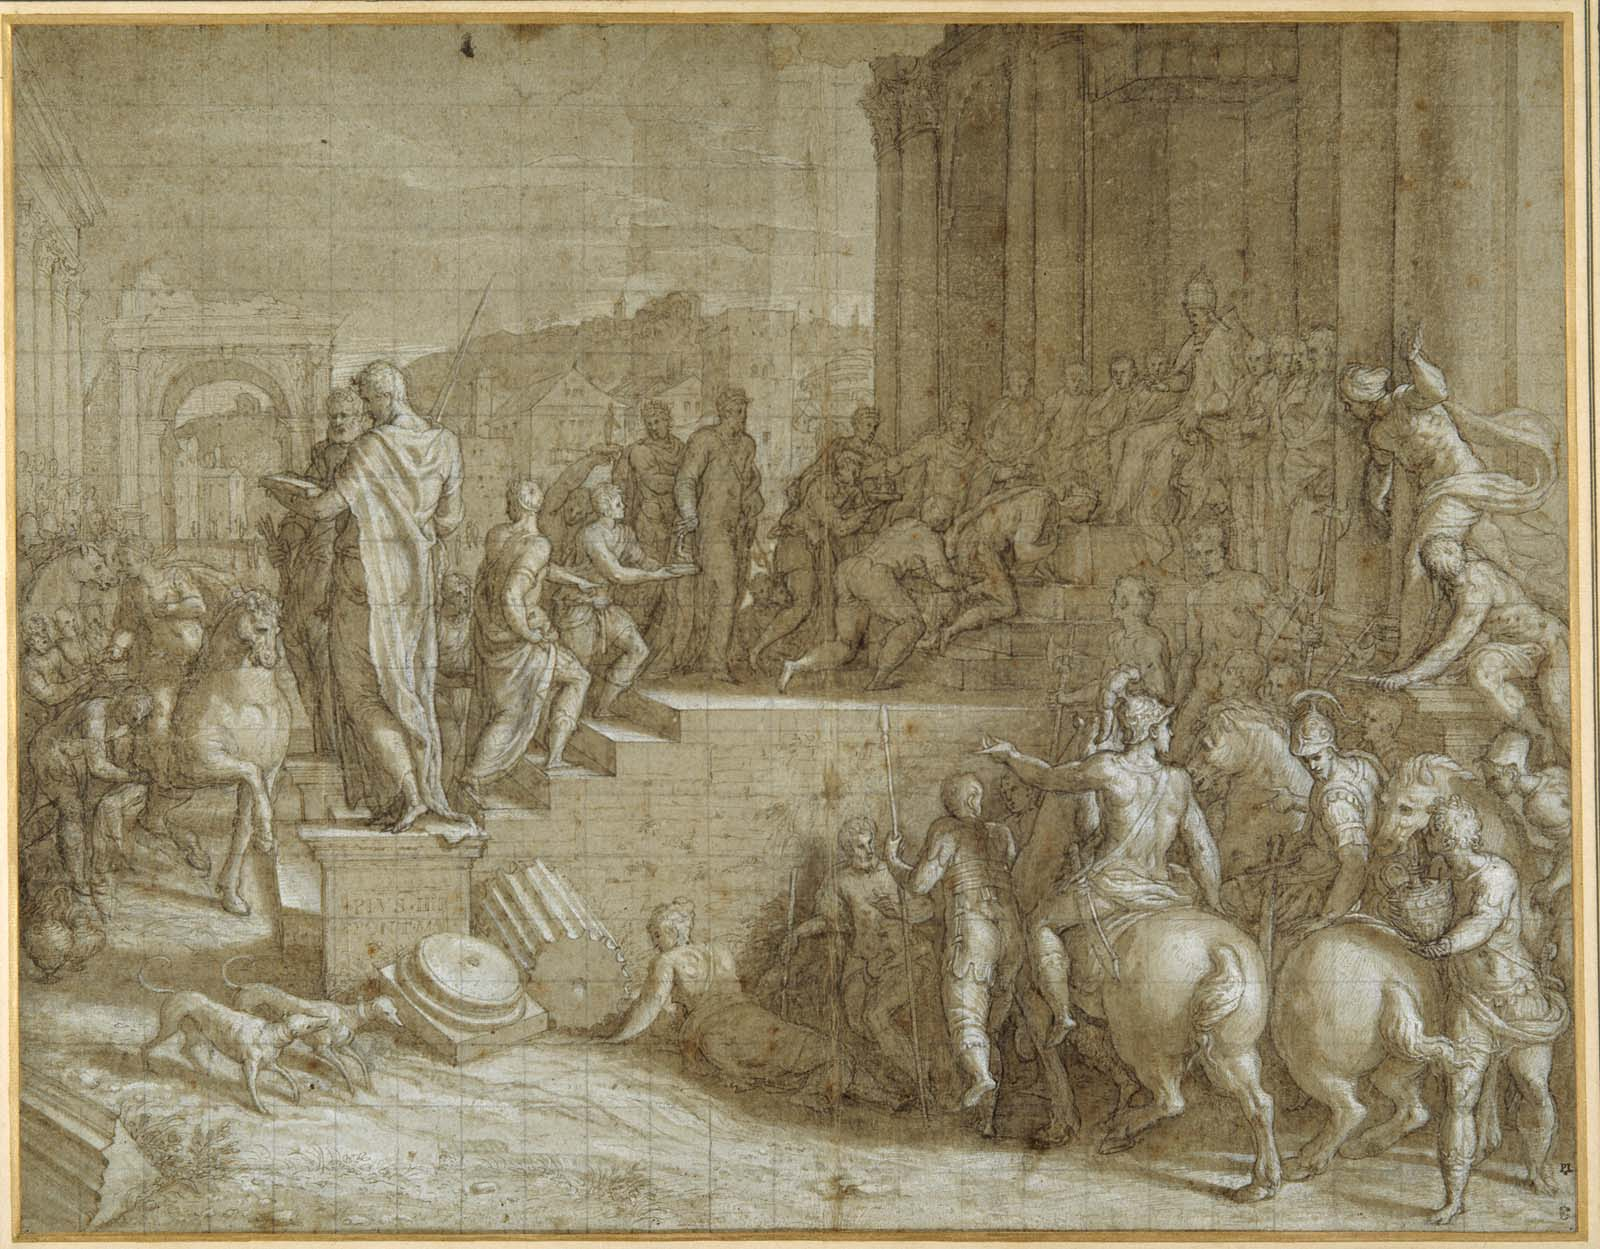 fine pencil drawing of a classical scene in which men and soldiers on horseback approach a man seated on a throne before Greek style classical building